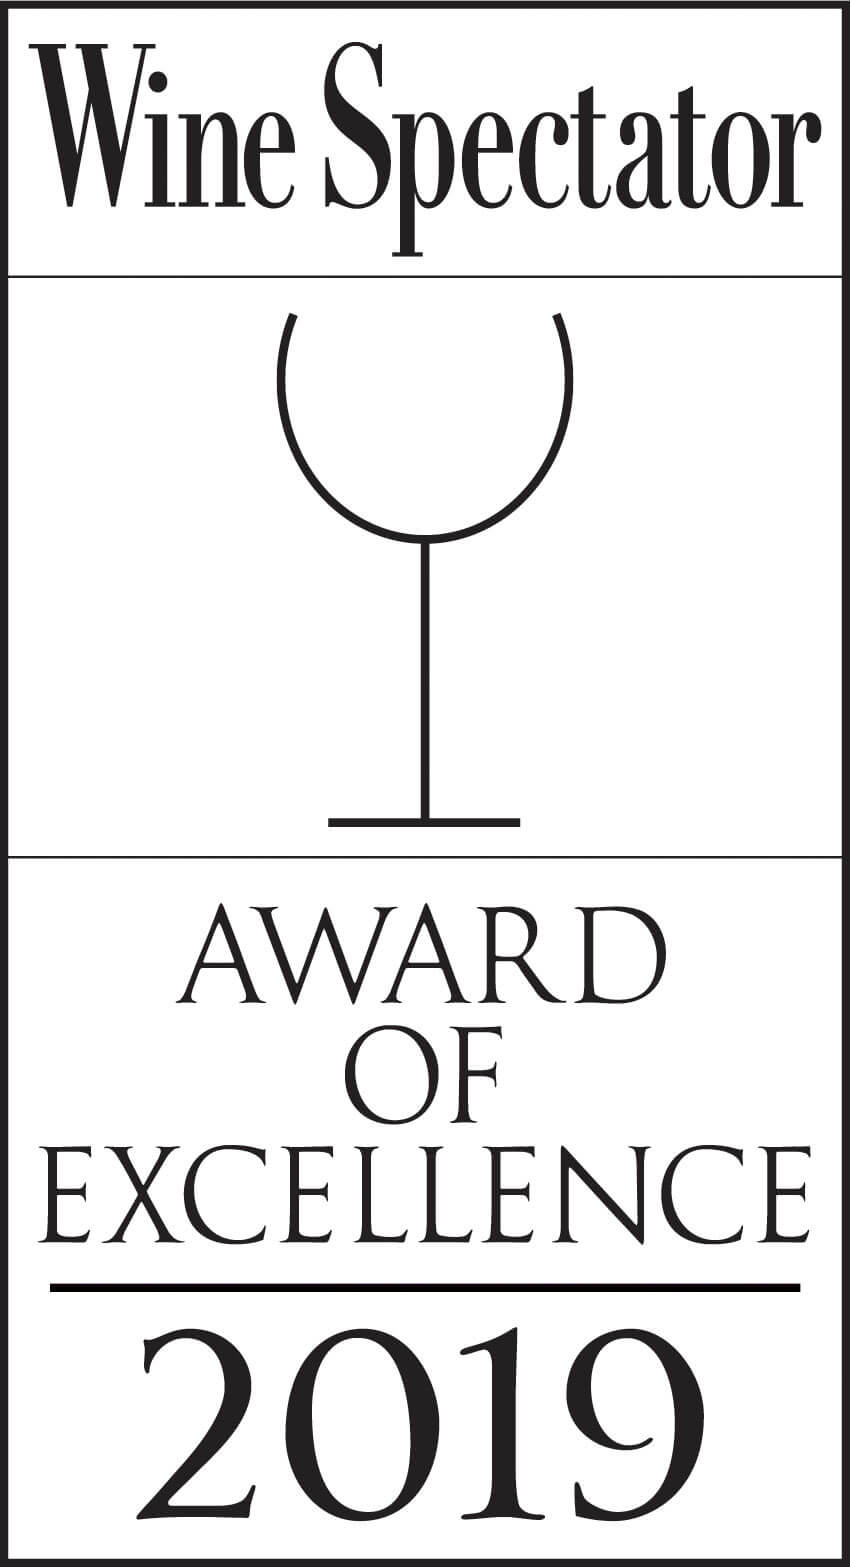 wine spectator award of excellence 2019 logo